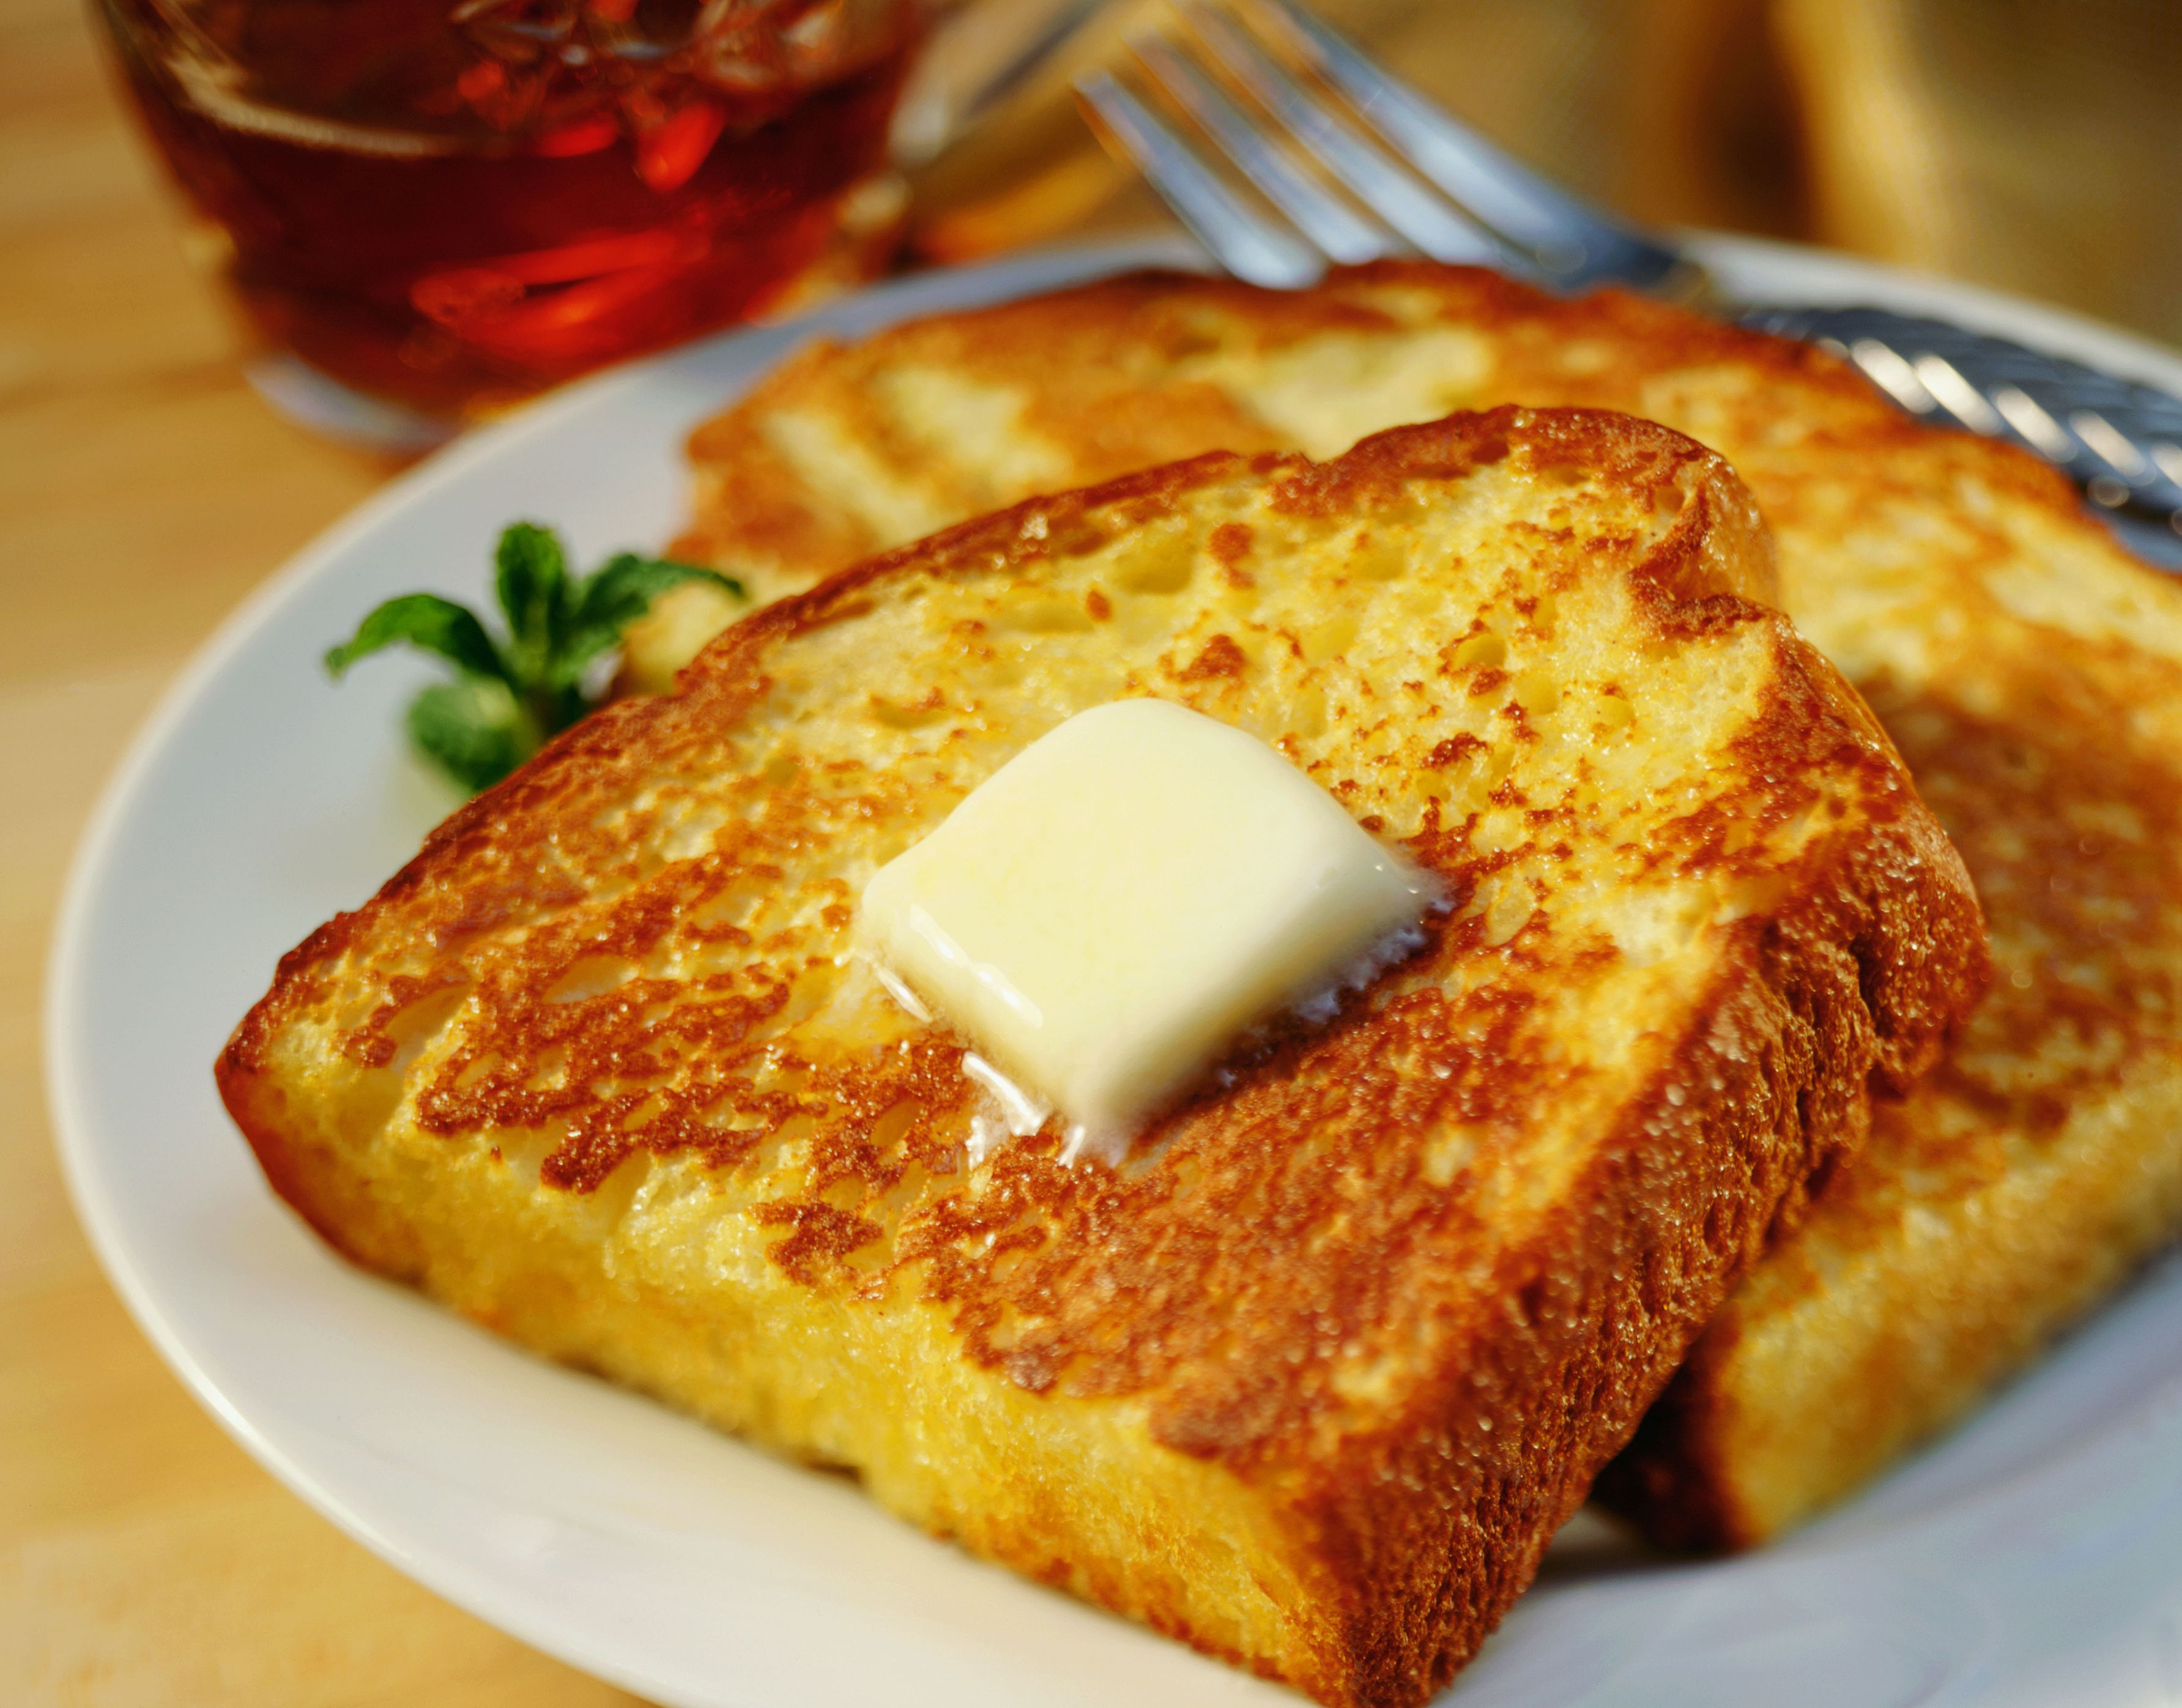 Buttered French toast